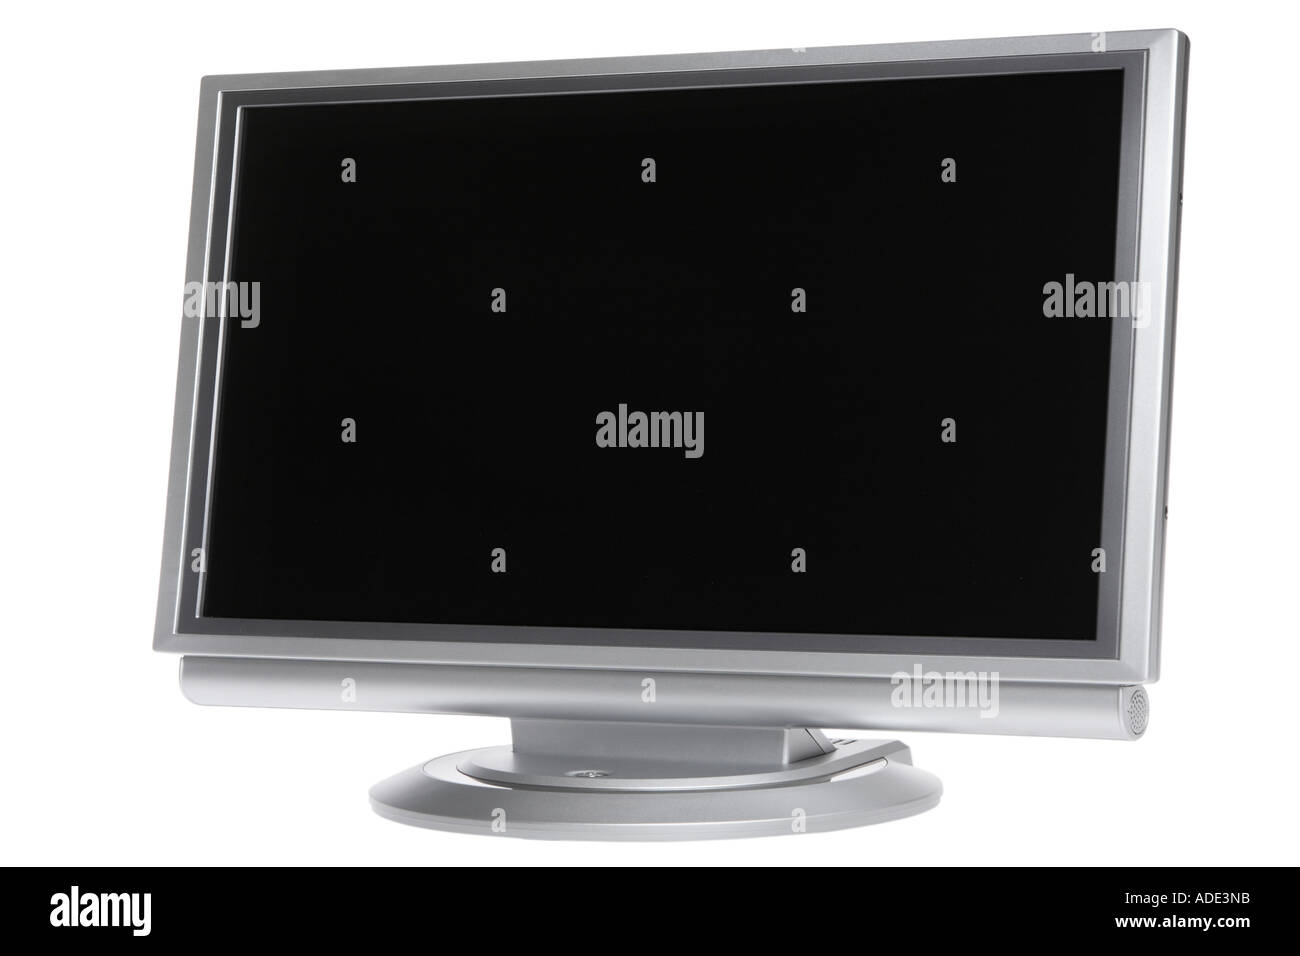 Widescreen LCD monitor - Stock Image